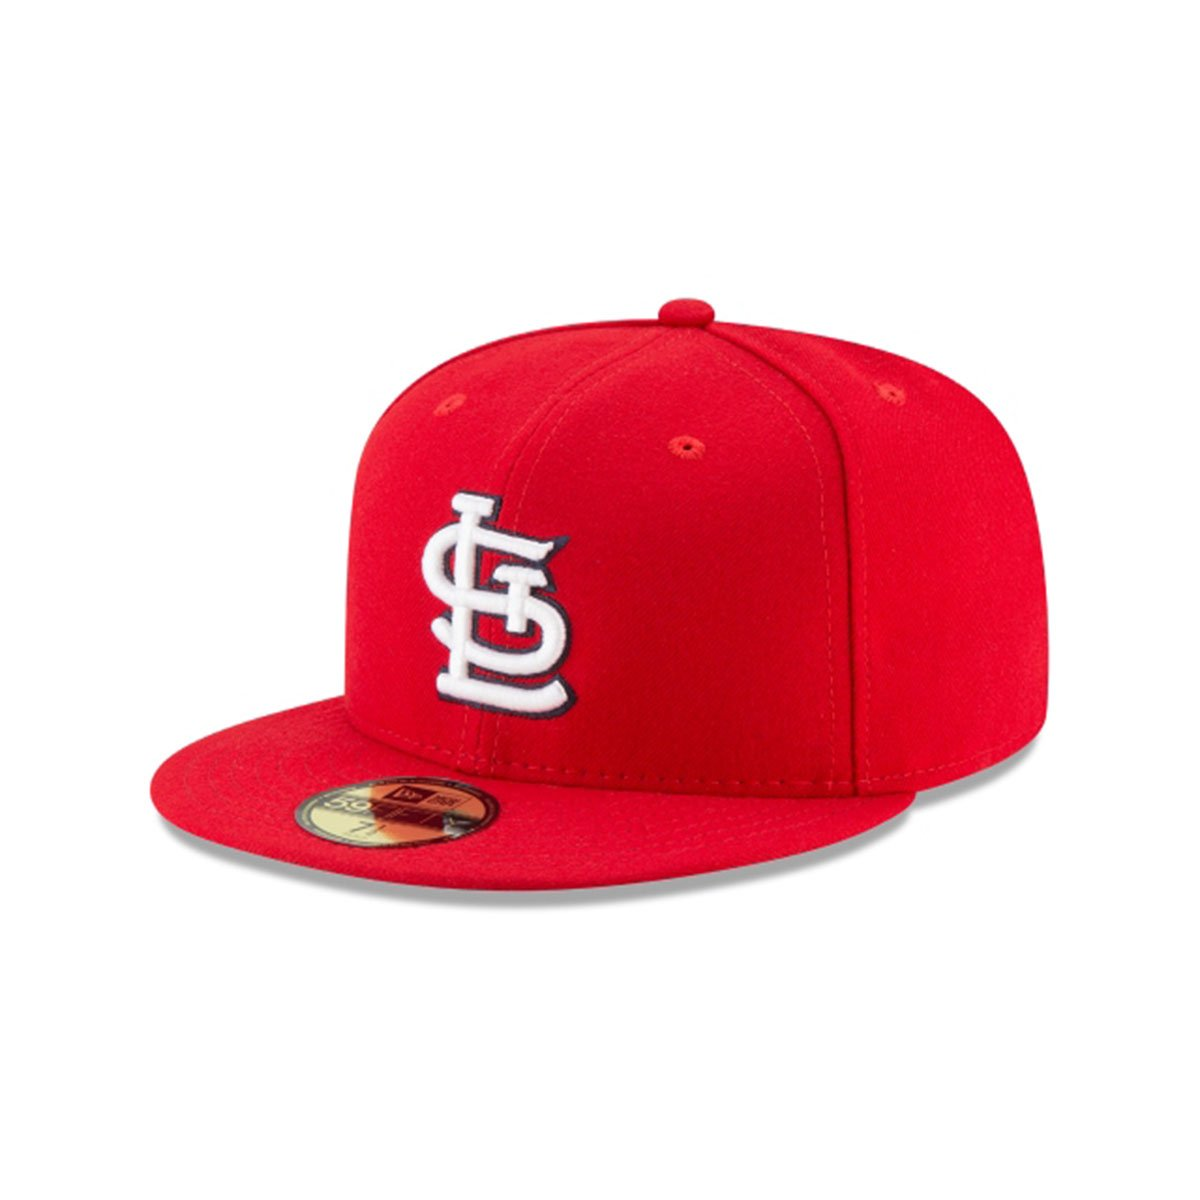 ST LOUIS CARDINALS 59FIFTY FITTED RED/WHTIE